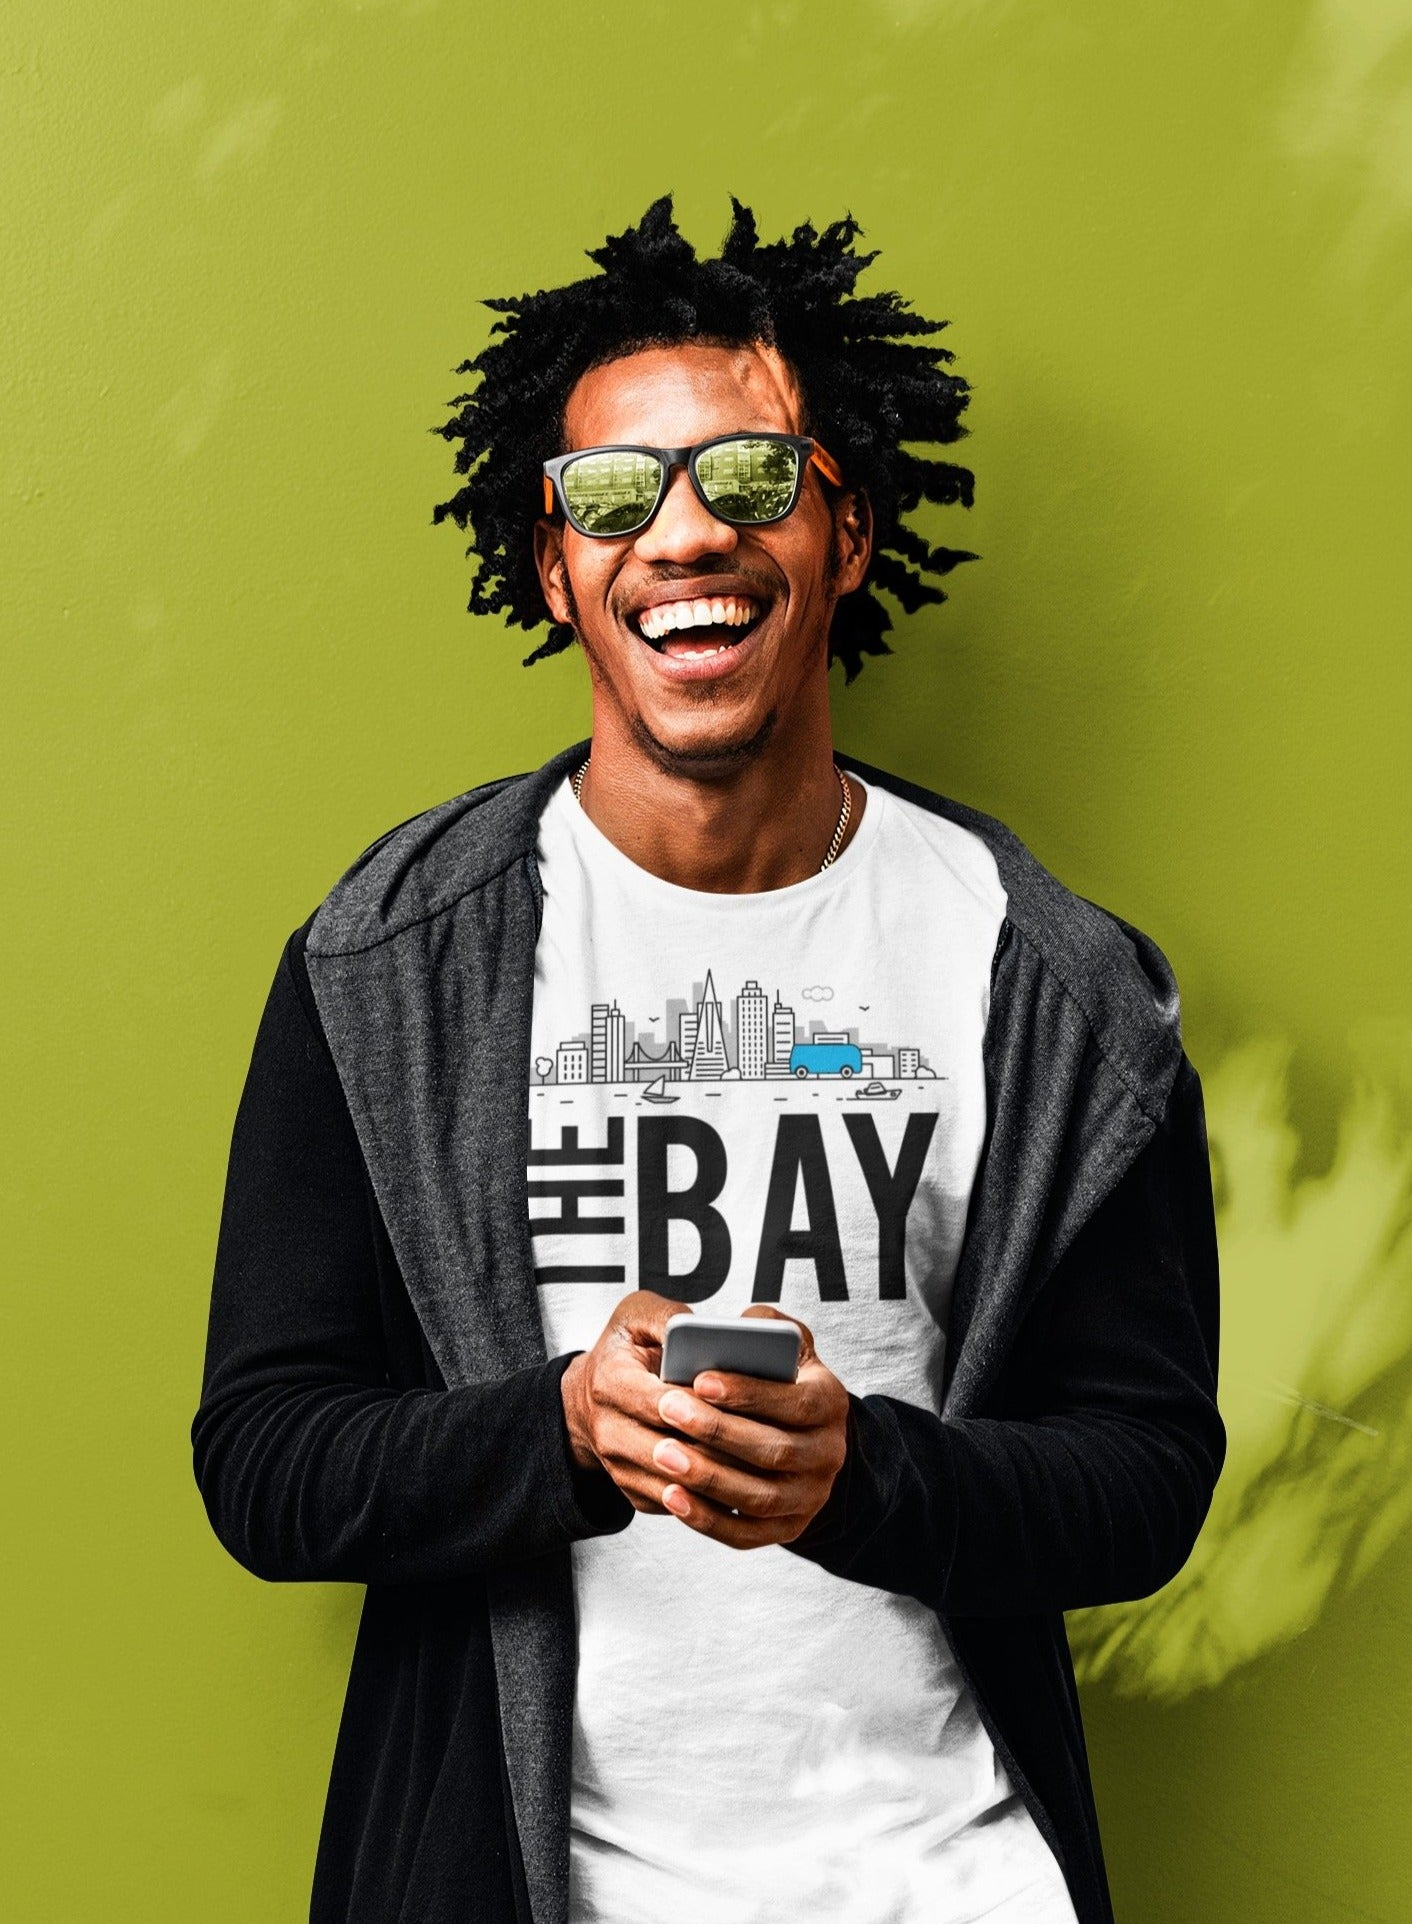 Lava MaeX THE BAY T-SHIRT - Beats 4 Hope